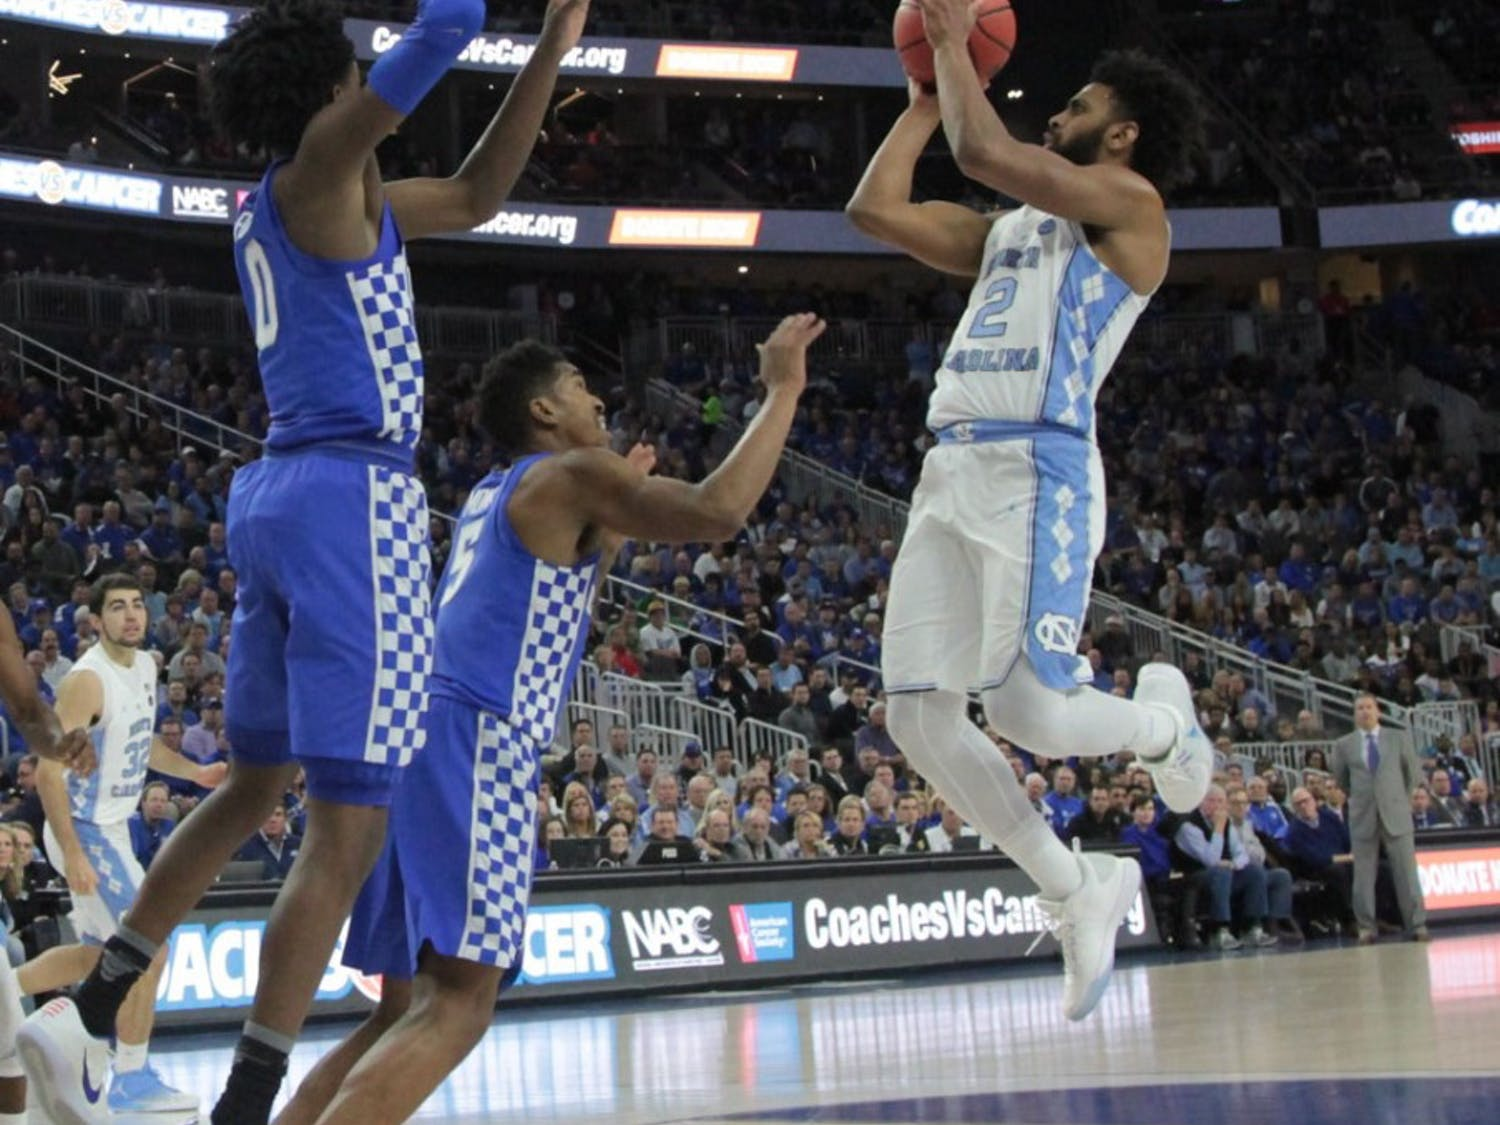 UNC guard Joel Berry (2) pulls up for a shot against Kentucky at the CBS Sports Classic on Saturday.